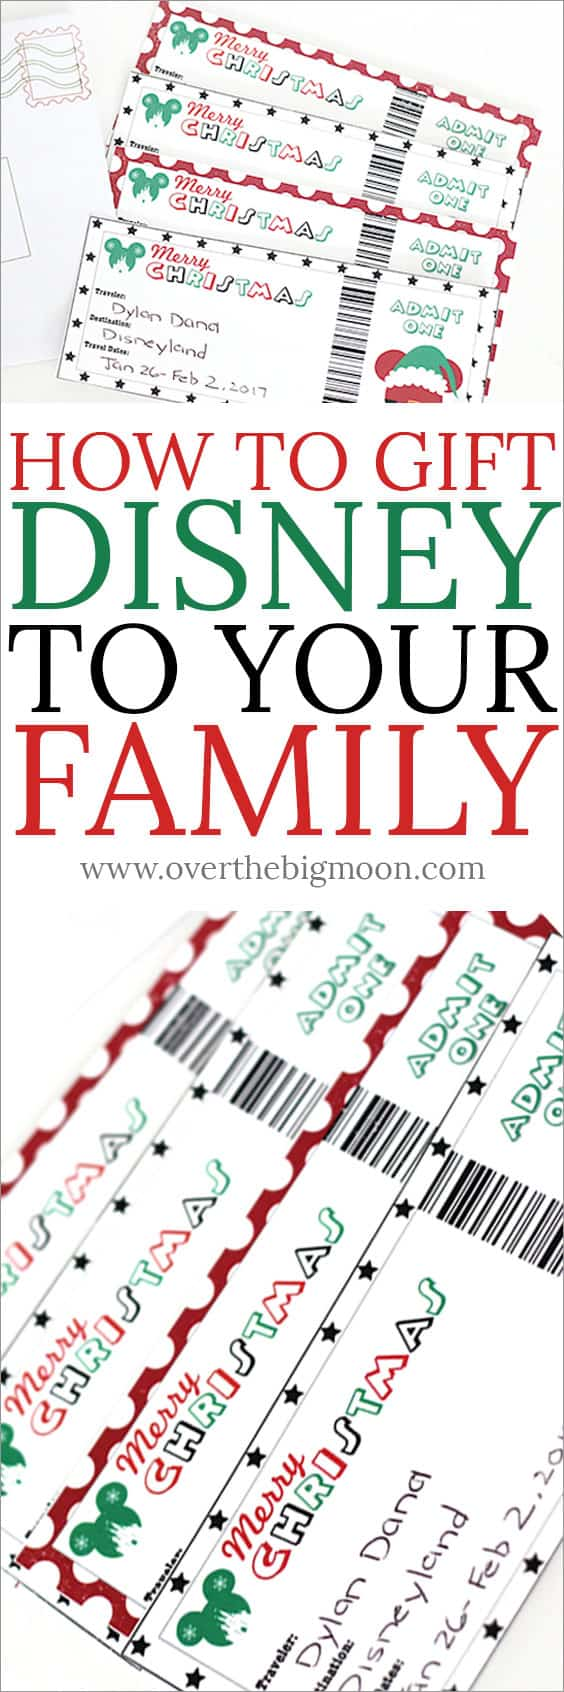 photo regarding Disney World Printable Tickets named How towards Reward Disney towards Your Loved ones with Printable Tickets